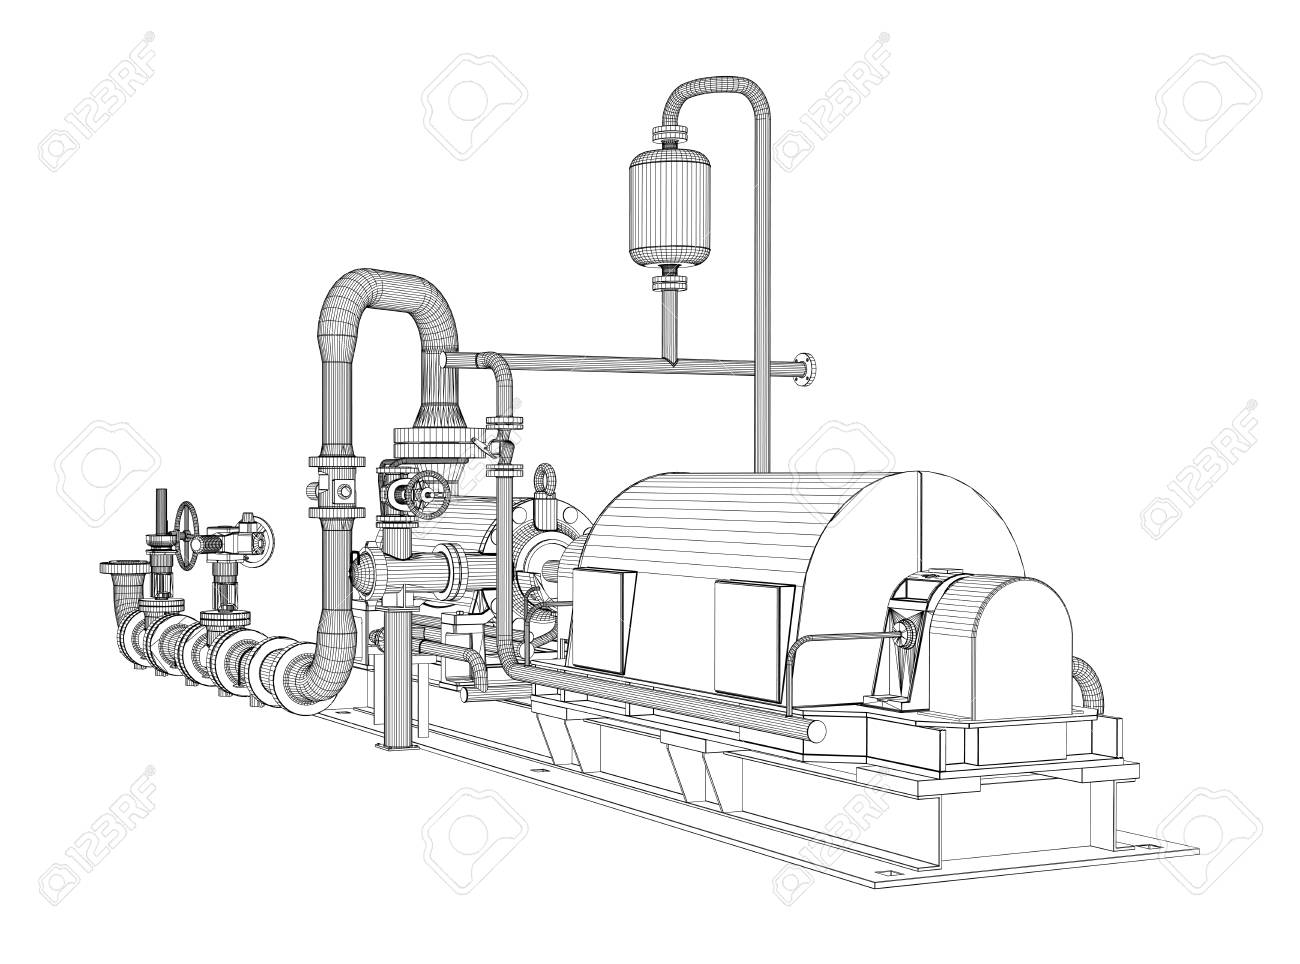 hight resolution of wire frame industrial pump 3d rendering vector illustration stock vector 87211928